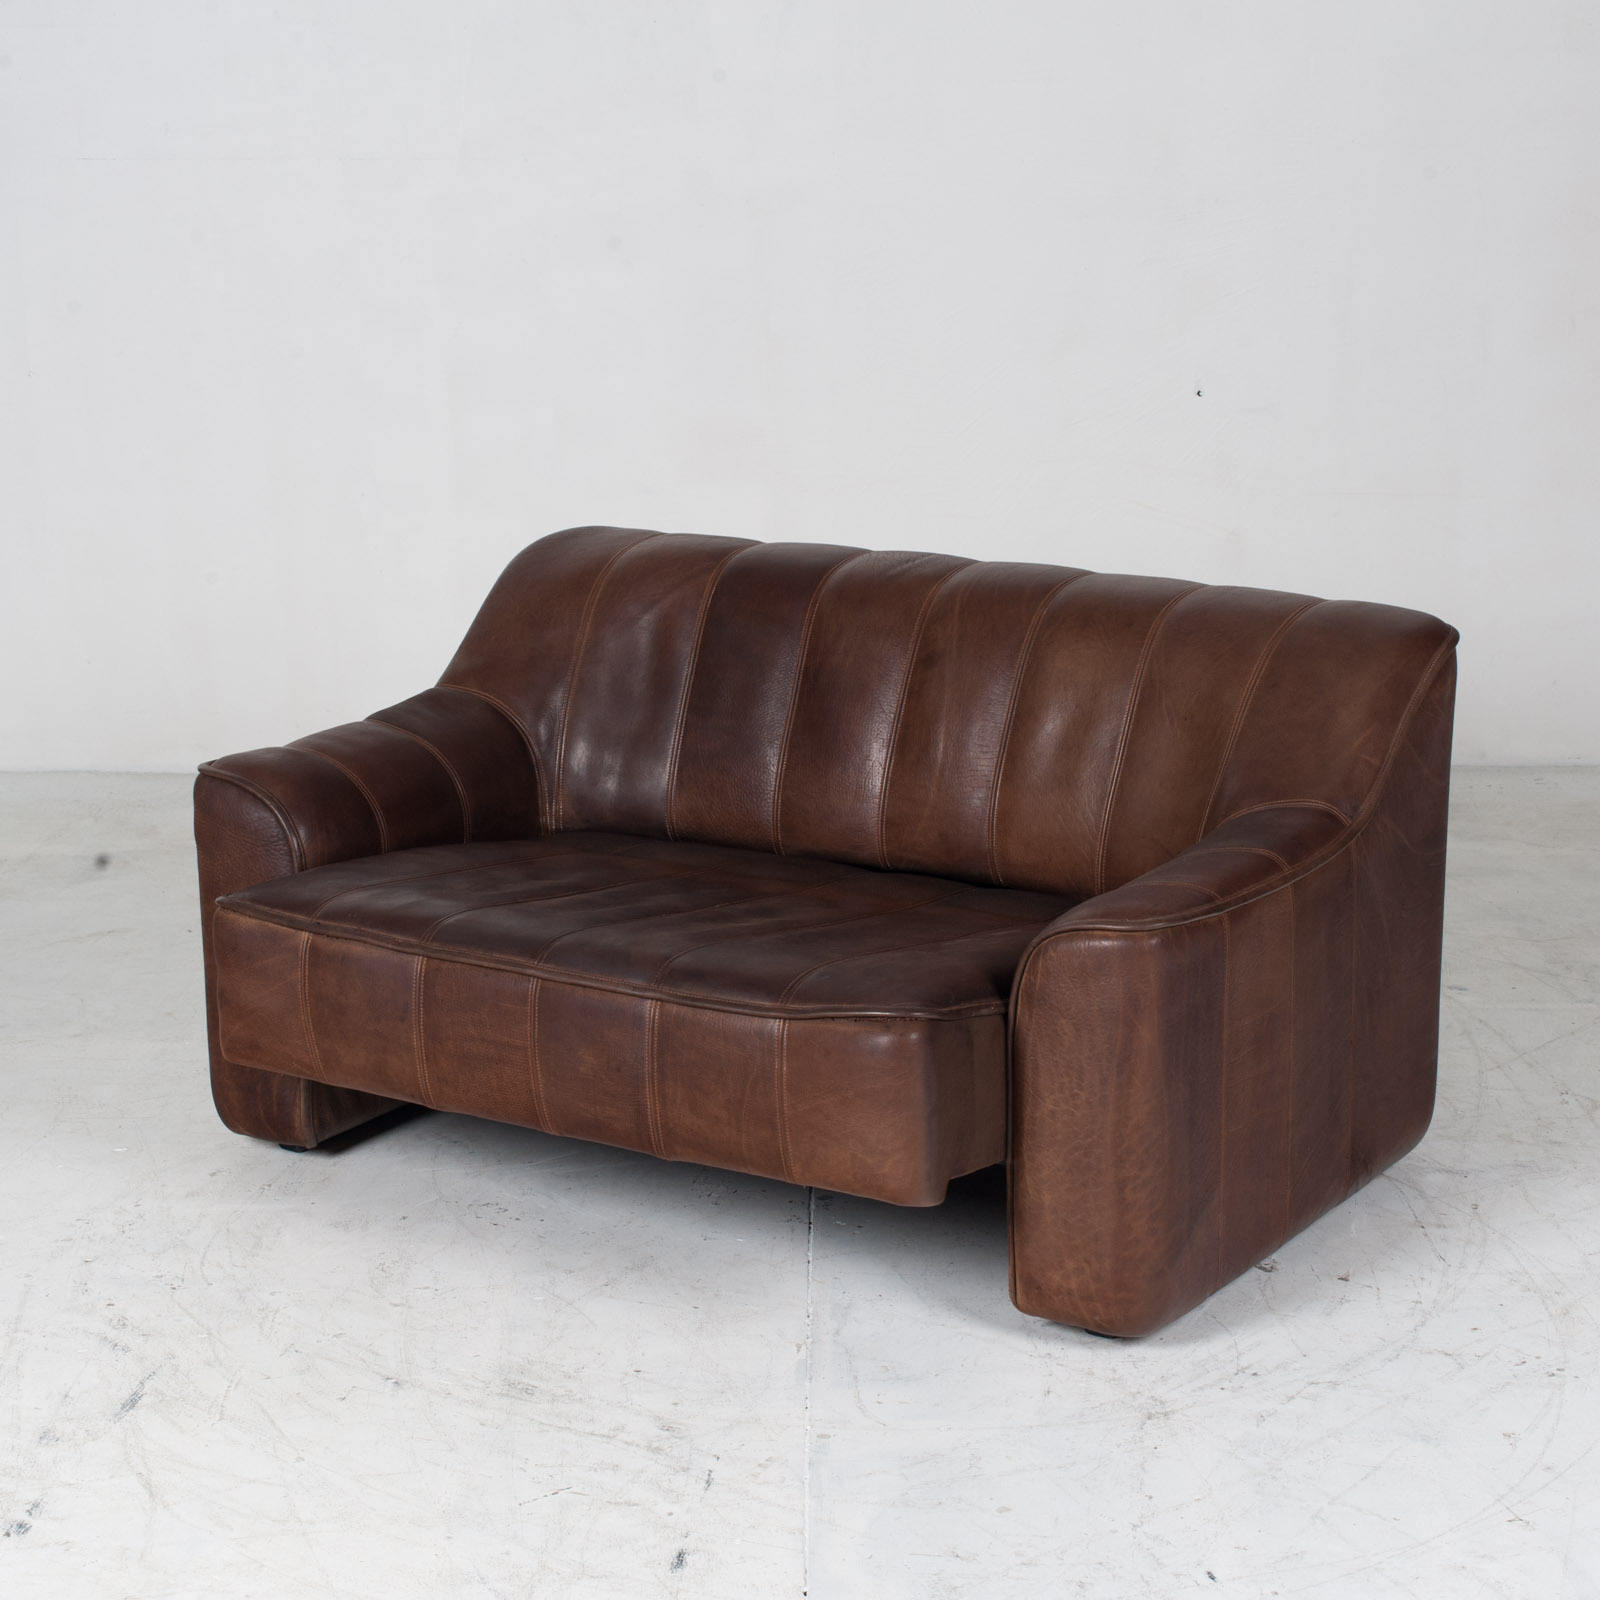 Model Ds 44 2 Seat Sofa In Buffalo Leather 1960s Switzerland 05